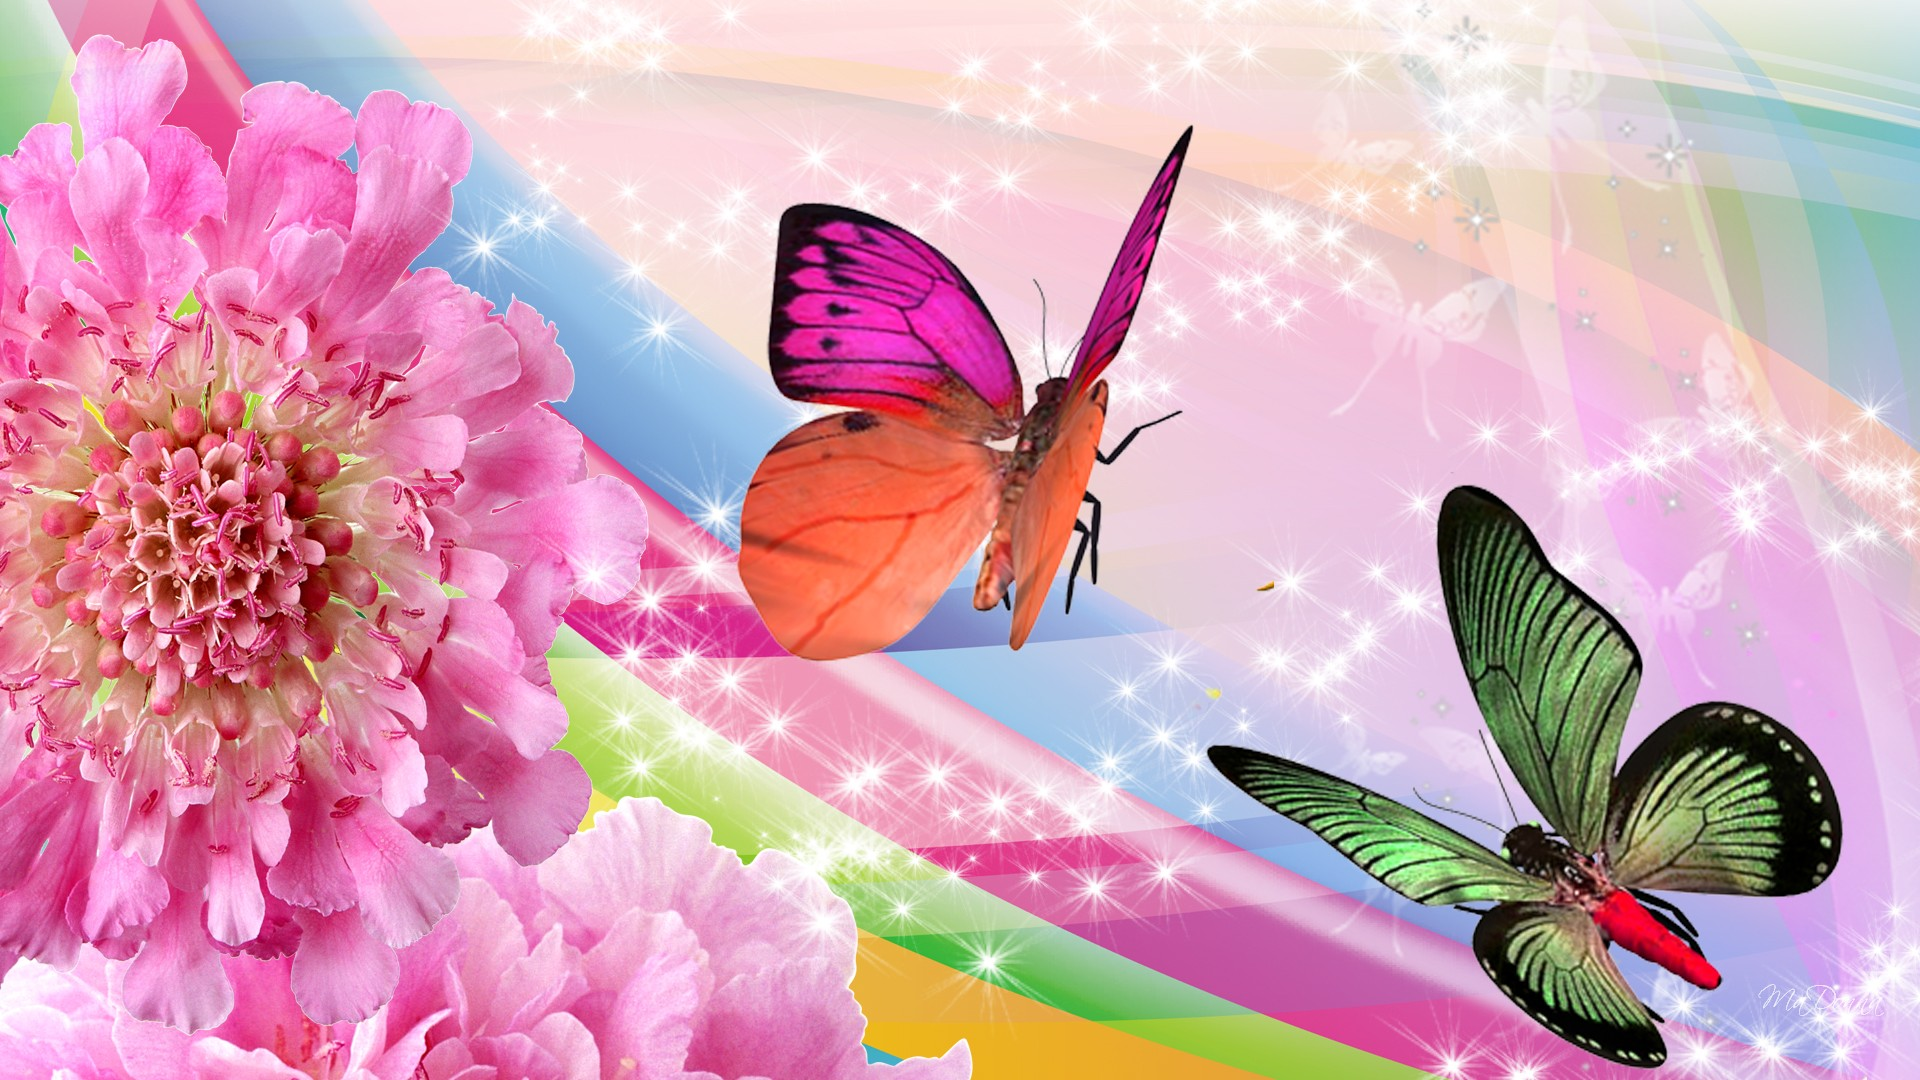 images of flowers and butterflies